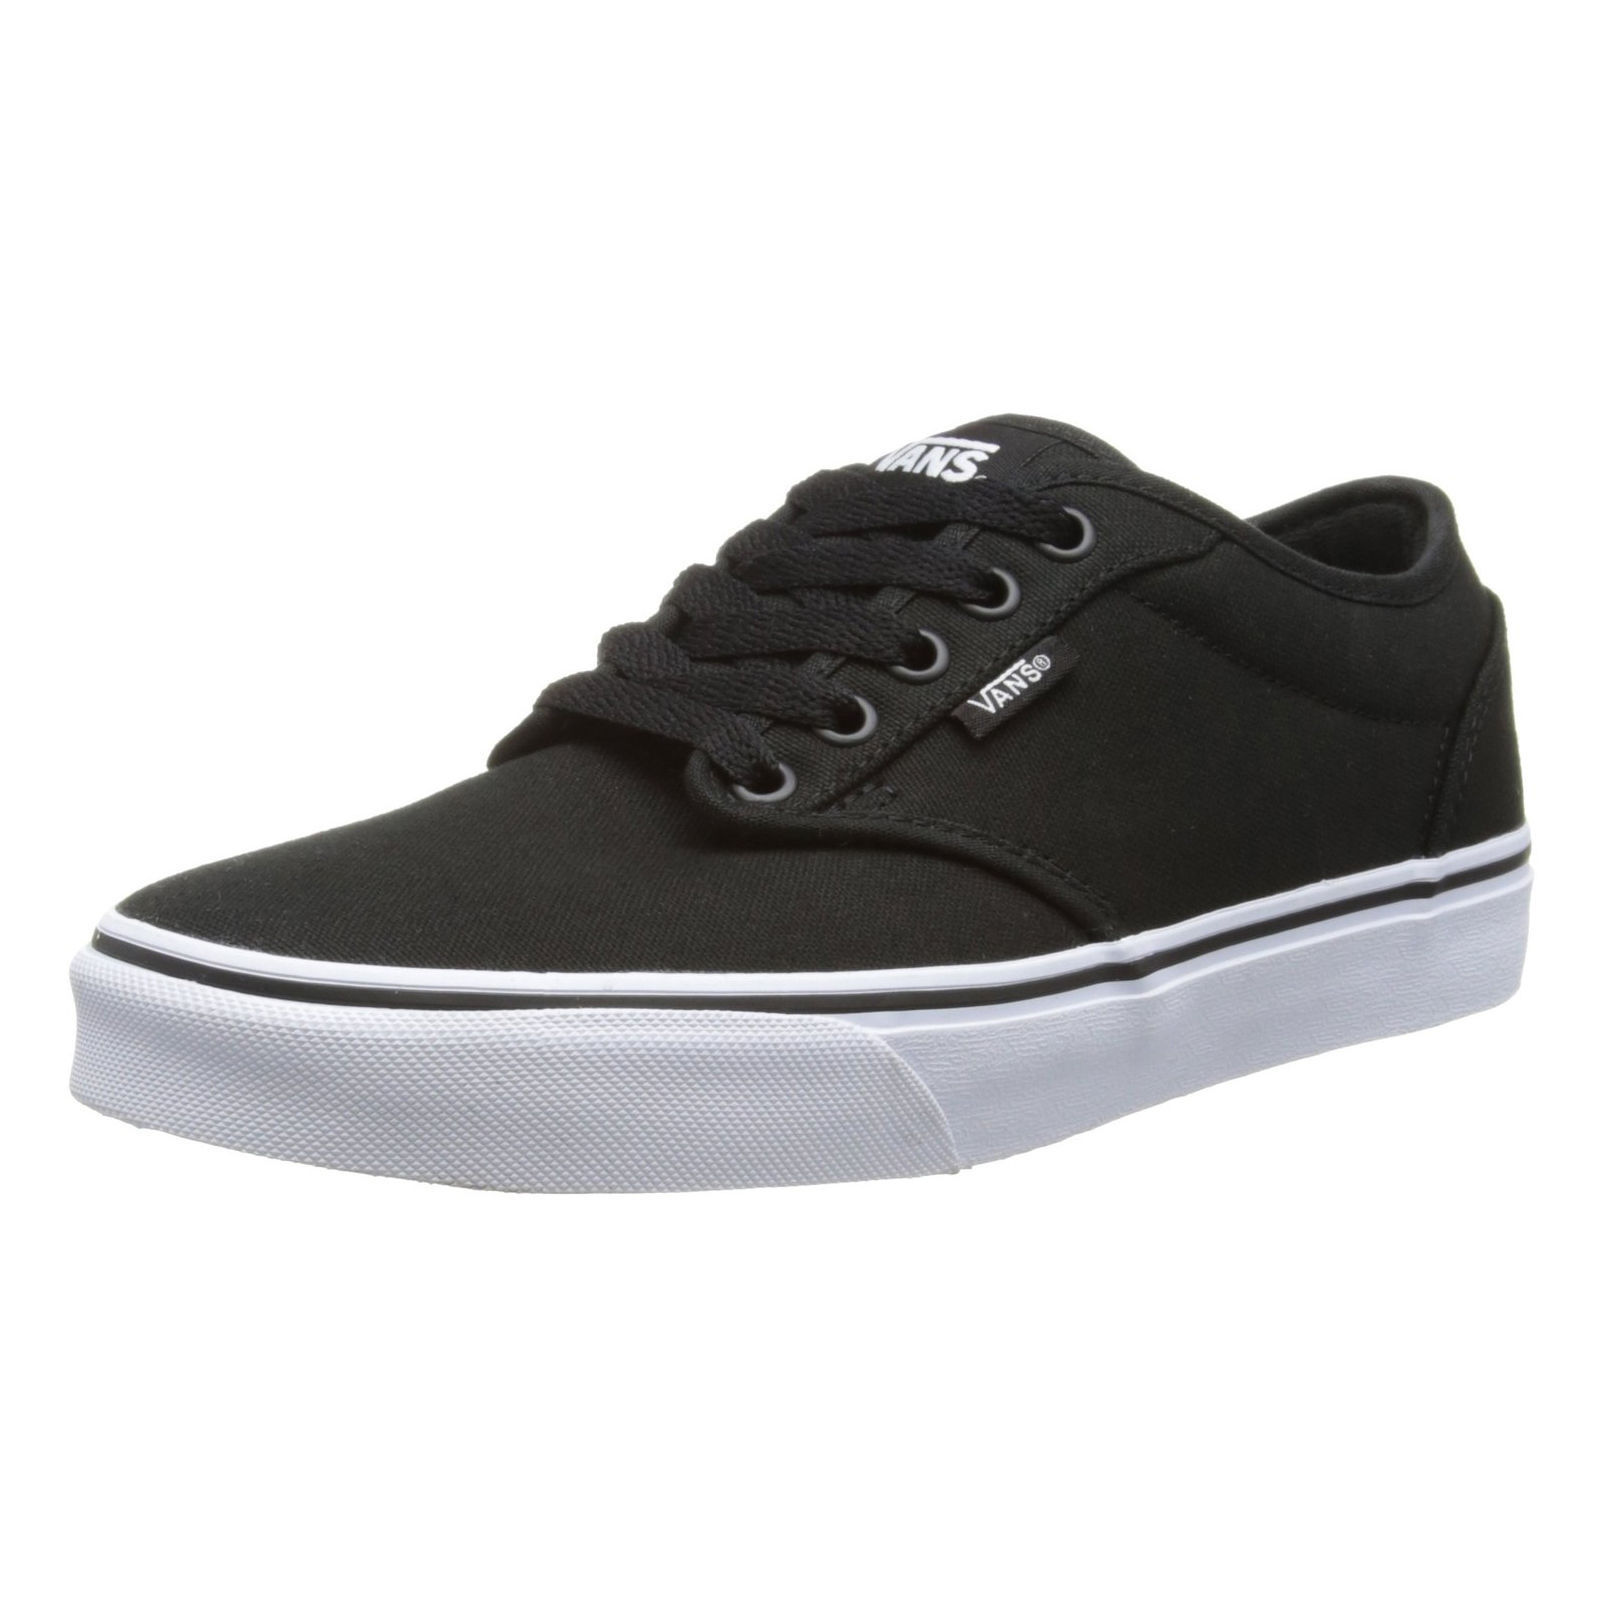 9adcd6af80 Details about VANS Atwood Mens Canvas Skater Trainers Plain Shoes Lace Up  Plimsoll Black White